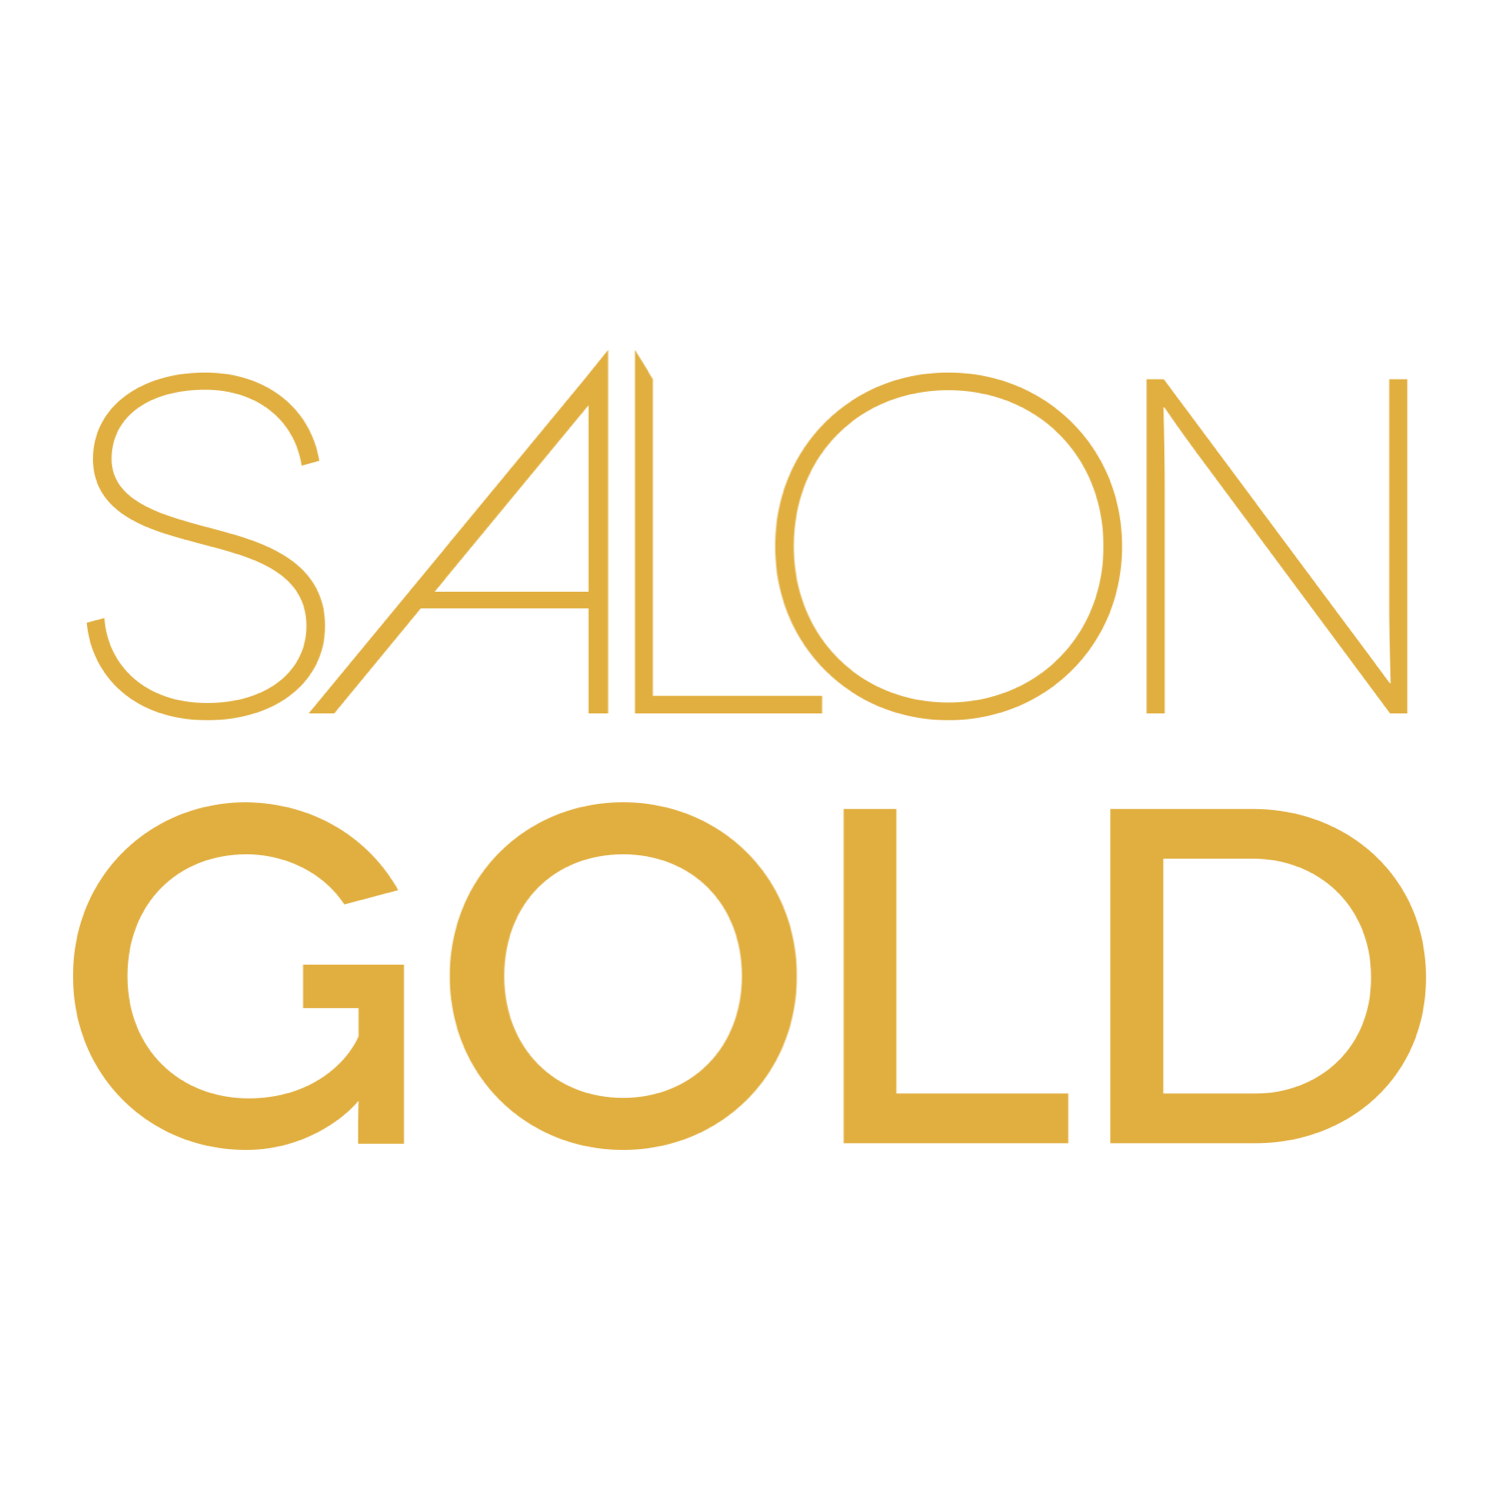 Salon Gold is a casual, comfortable, and locally owned salon.